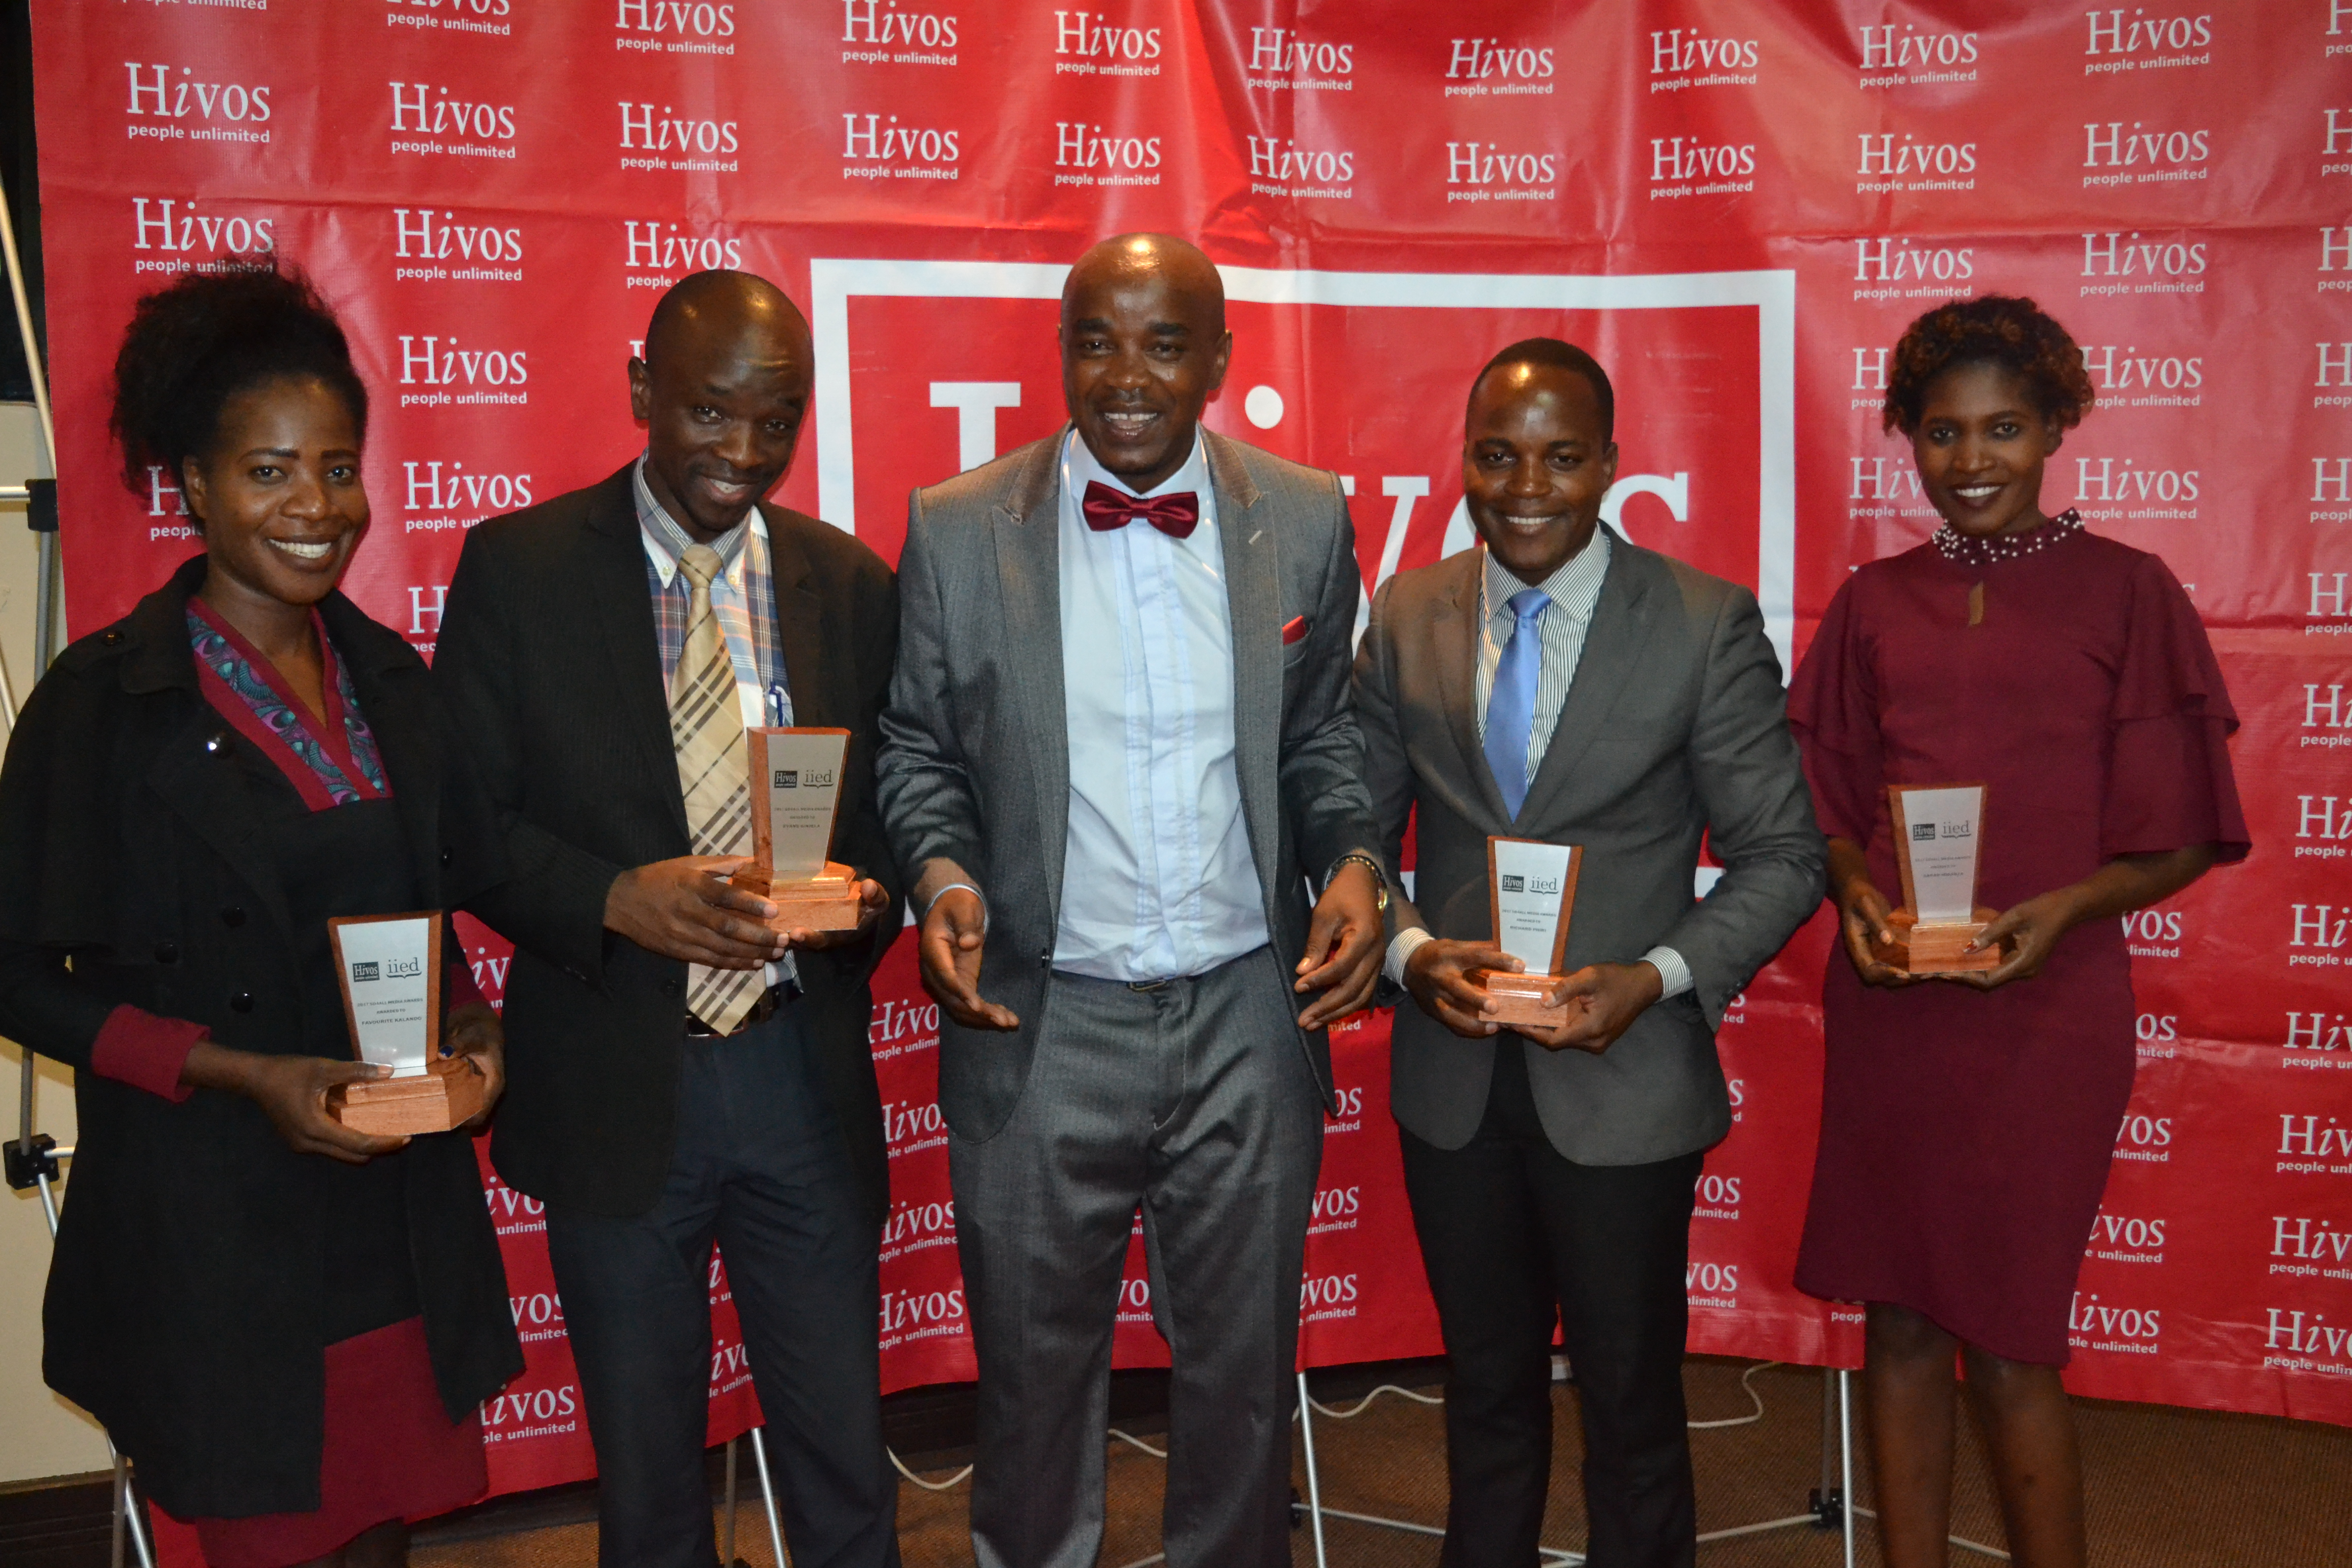 Hivos Sustainable Diets for All programme holds the first ever SD4ALL Media Awards in Zambia